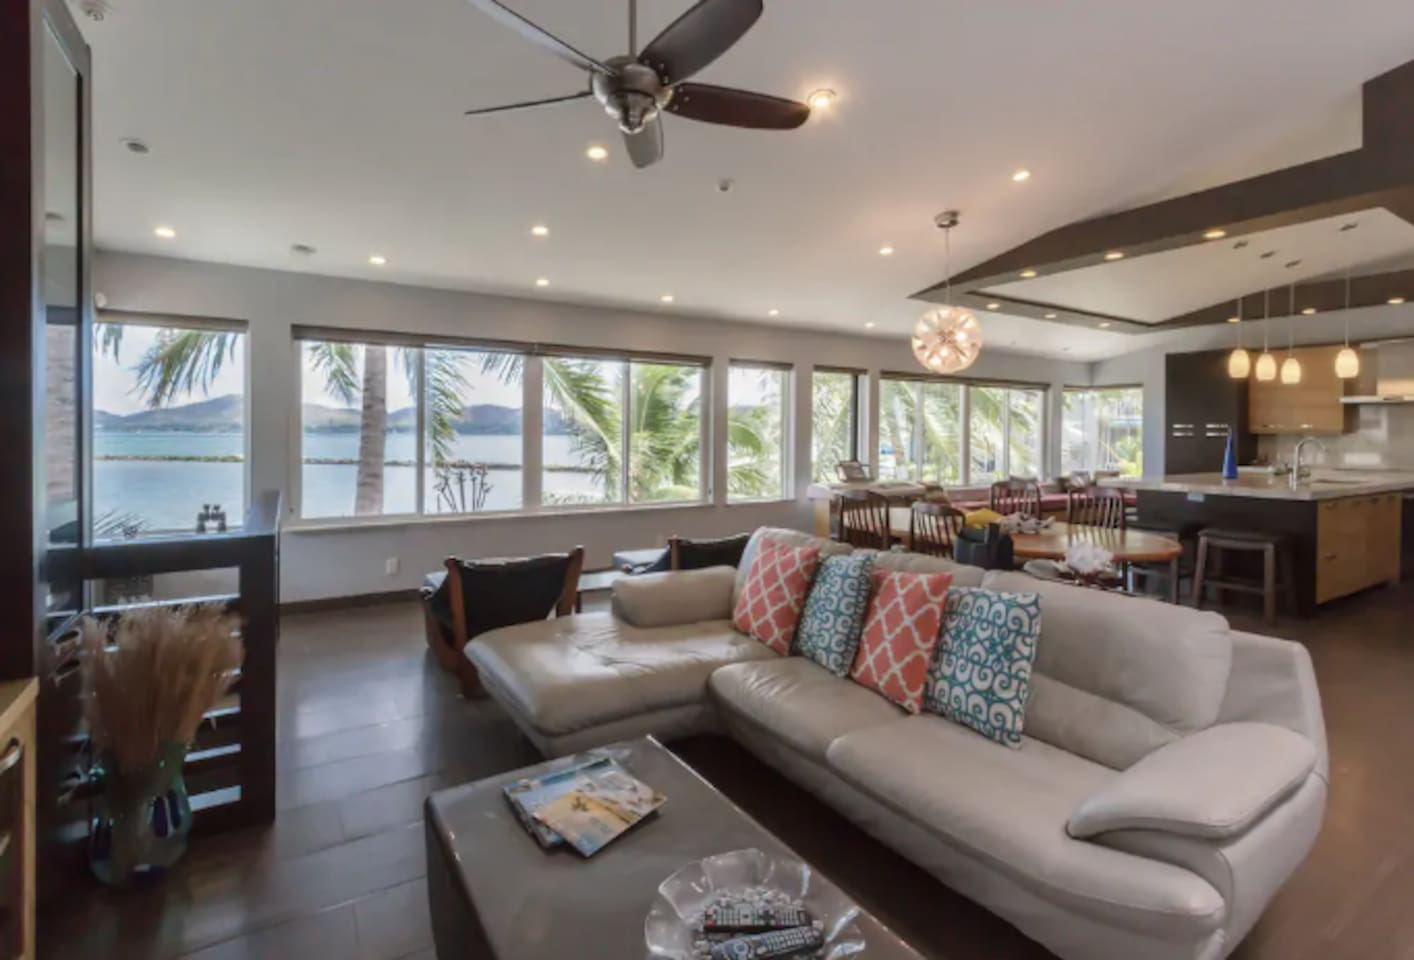 Sea Breeze Villa right on the water and views of Kaneohe Bay. Living room has recessed lighting, ceiling fans and wall to wall windows to take in the views of Kaneohe Bay.